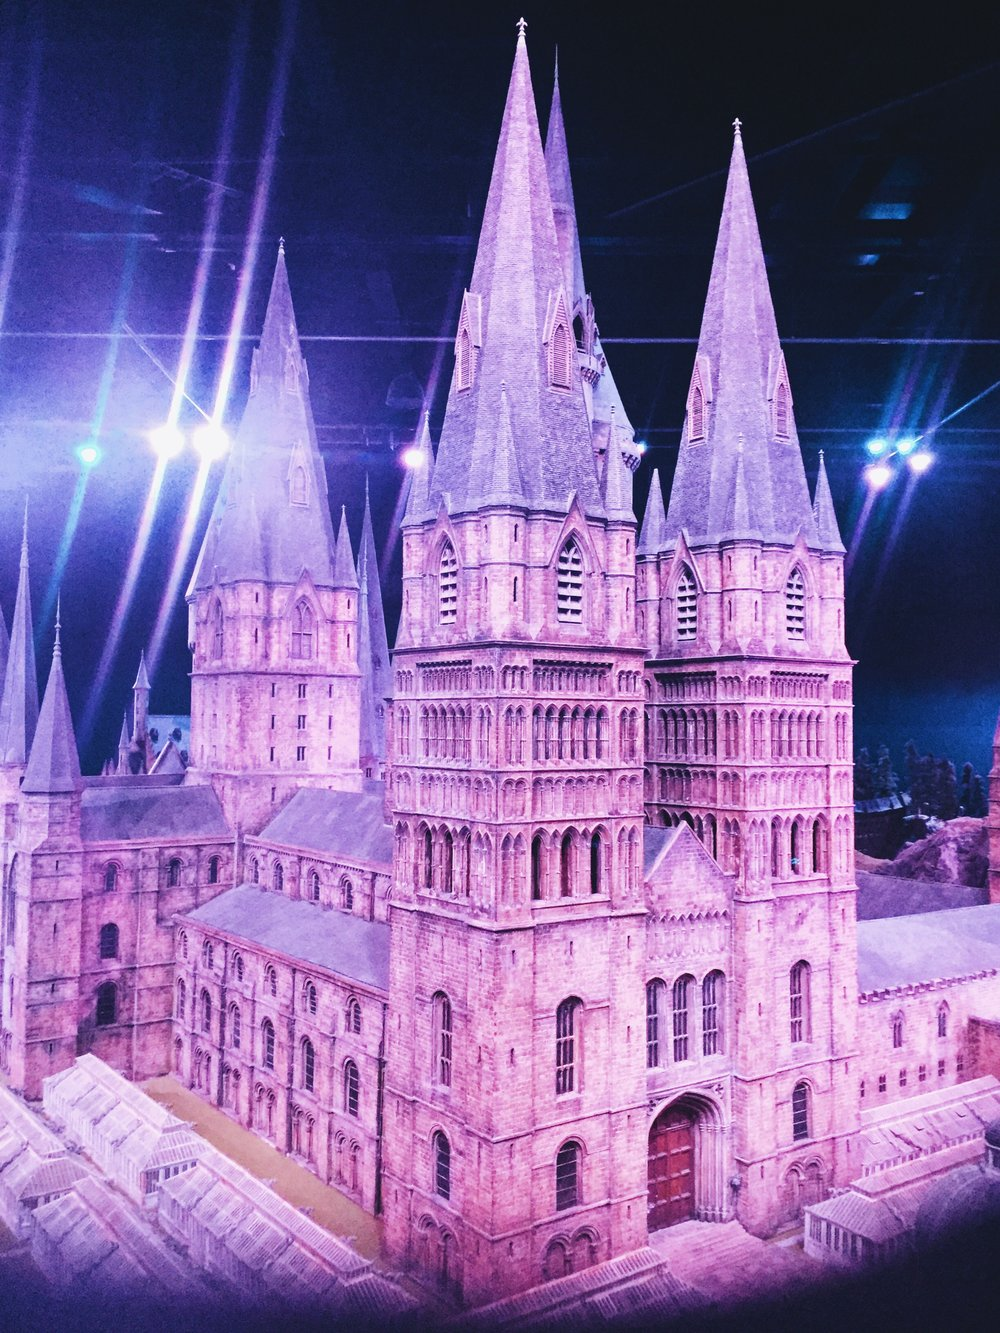 The Making Of Harry Potter: Warner Bros Studio Tour London Hogwarts Model